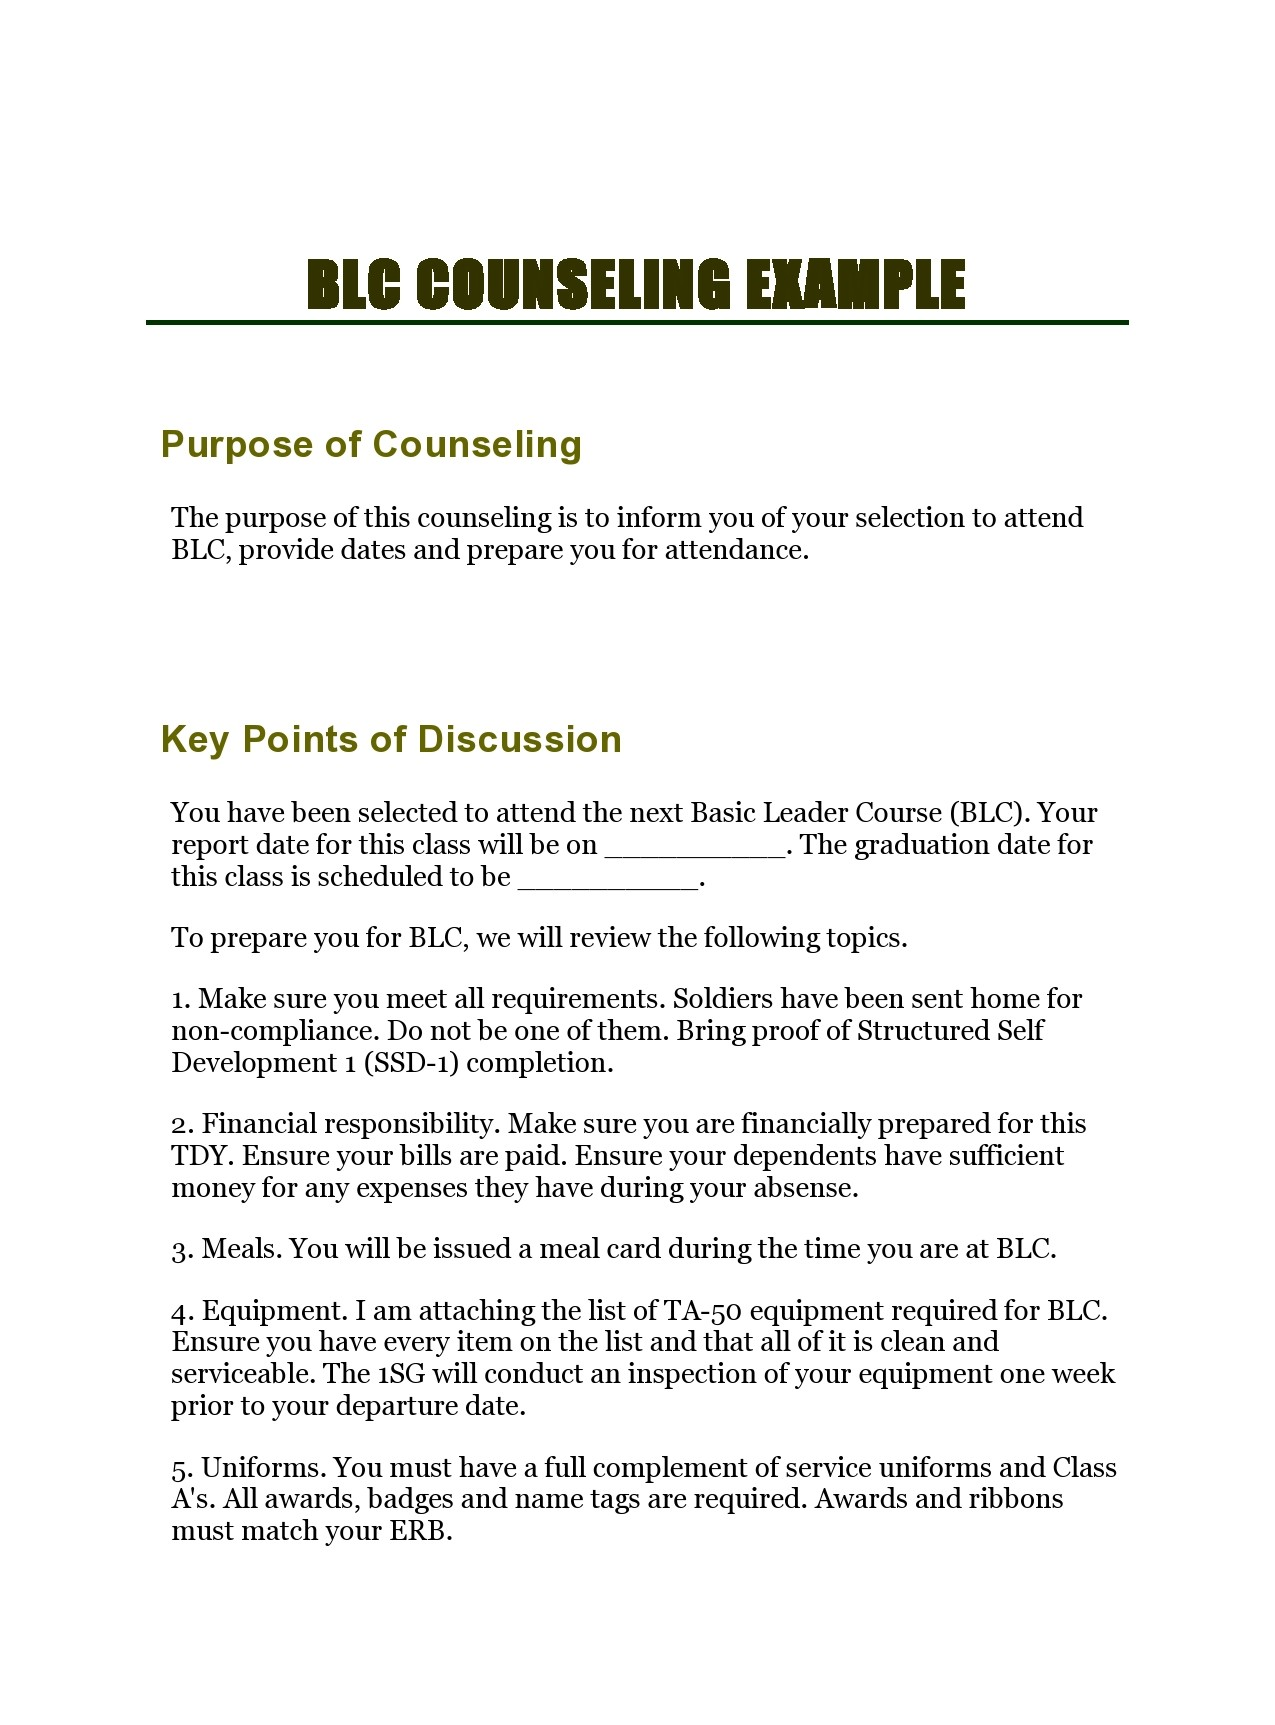 Free army counseling form 11